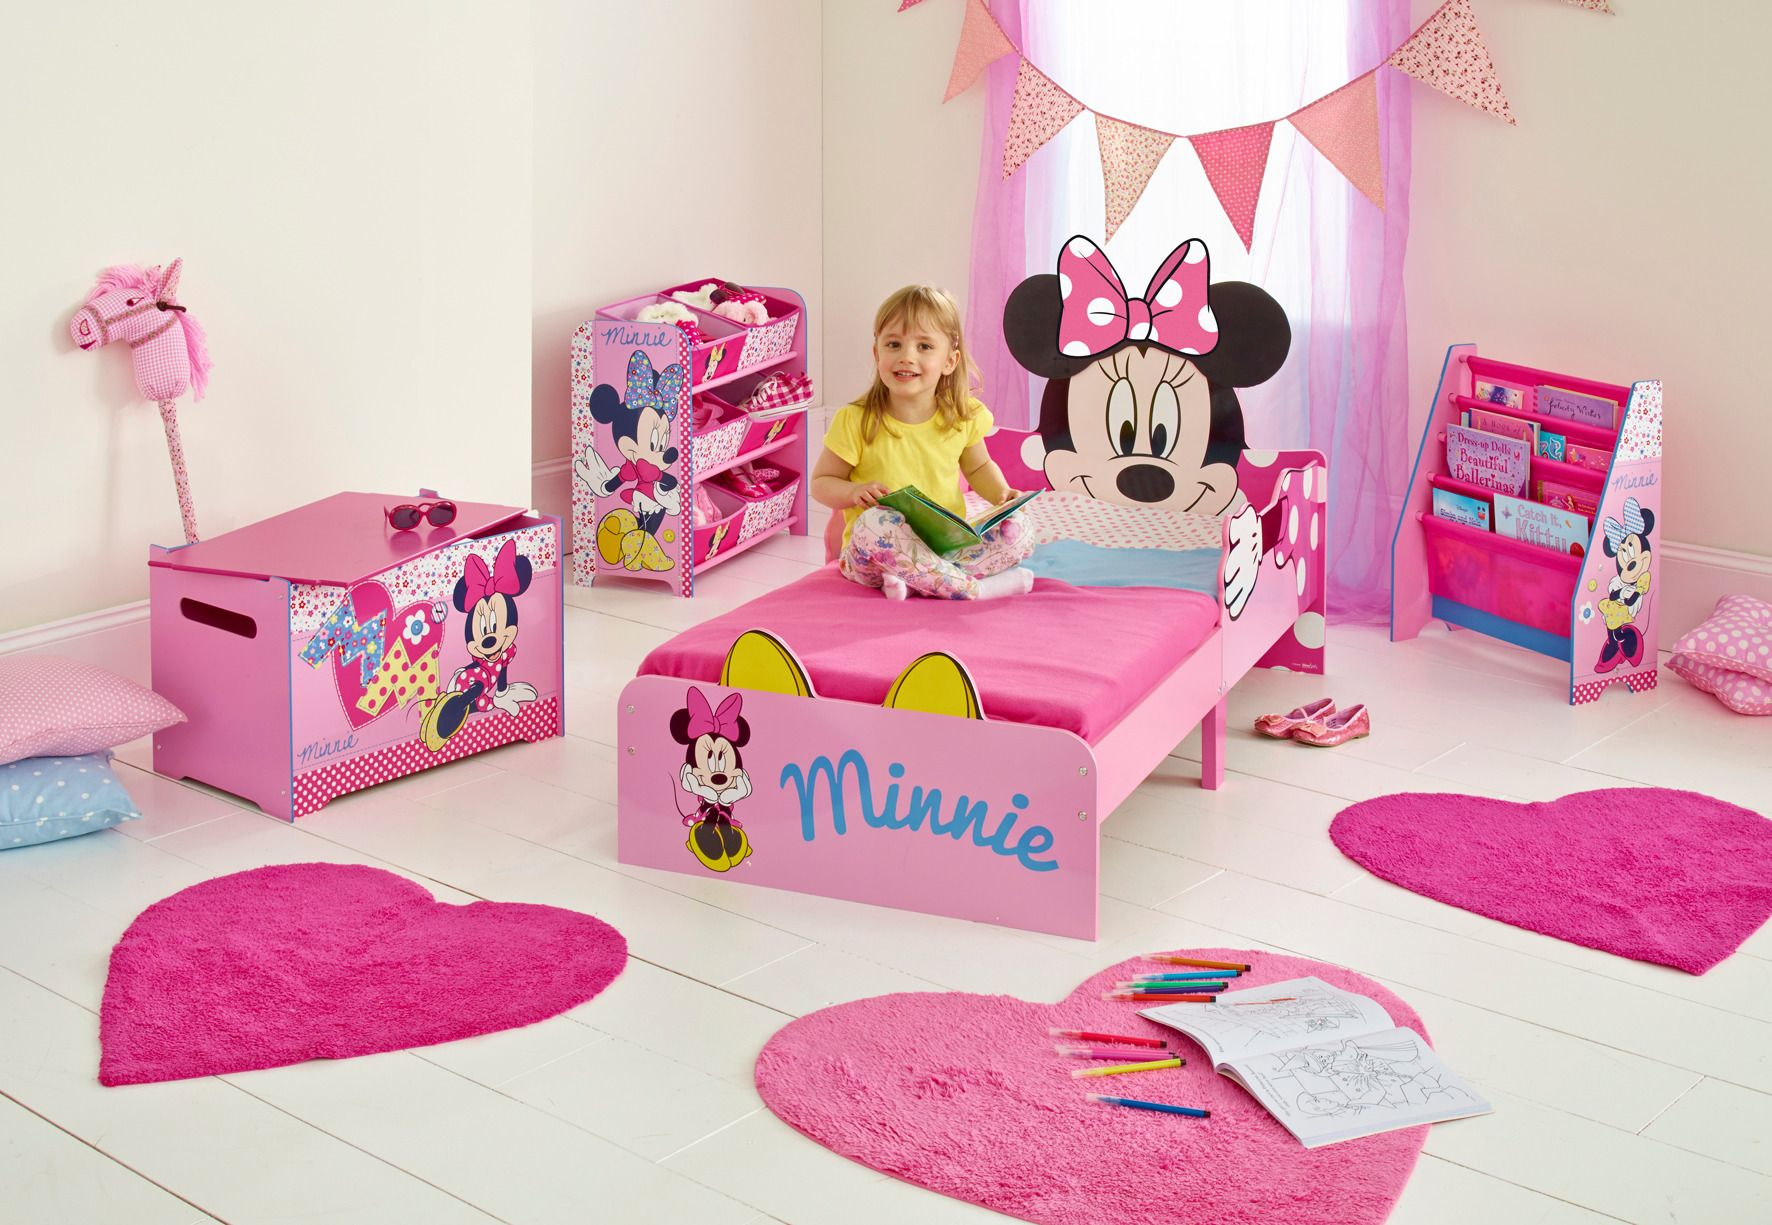 Dormitorios De Bebes Niña Dormitorio Infantil Minnie Mouse Disney Ideal Para Toda